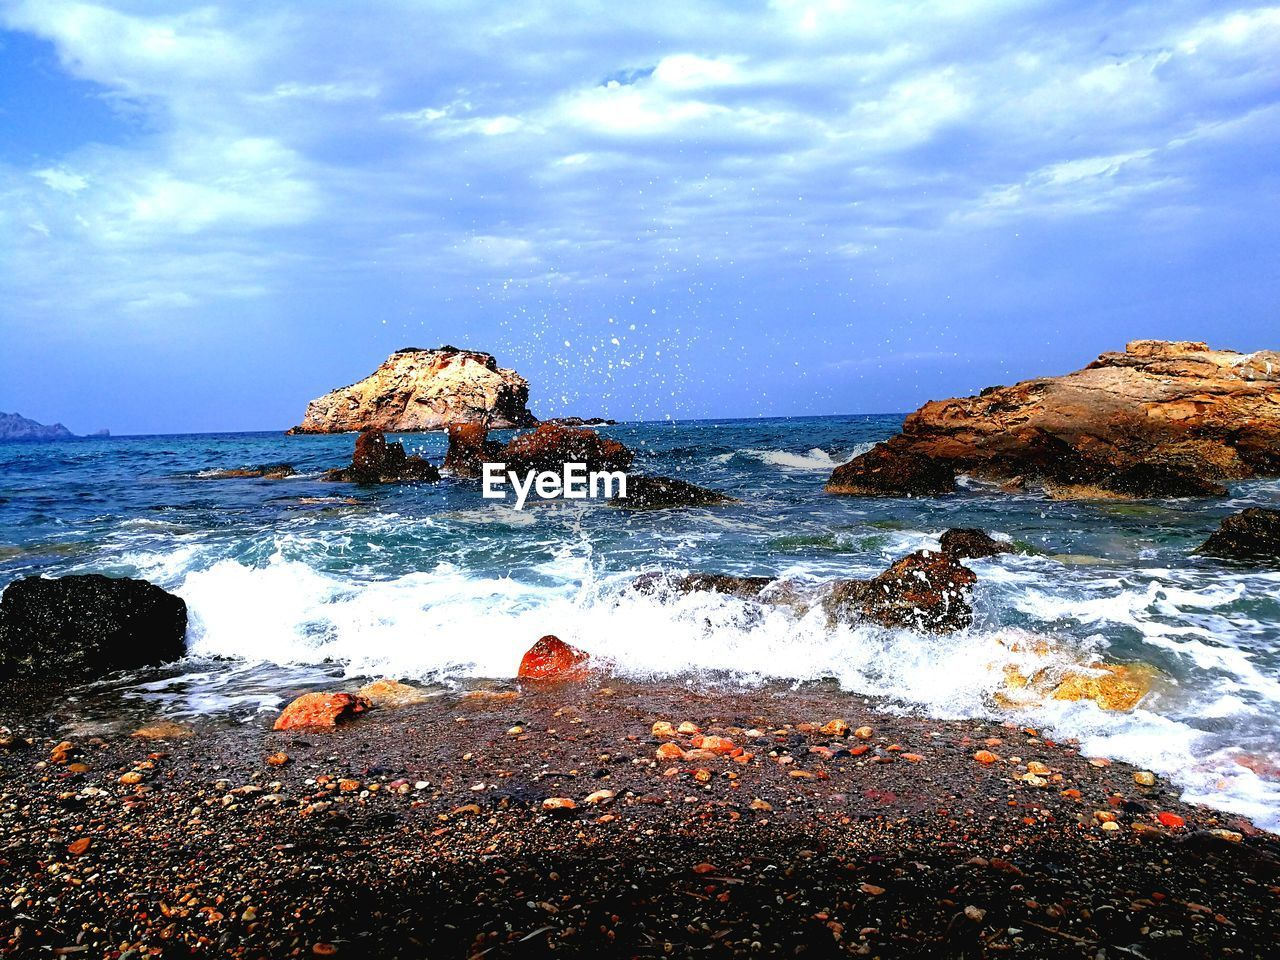 sea, beauty in nature, sky, rock - object, nature, water, cloud - sky, horizon over water, scenics, tranquility, tranquil scene, no people, outdoors, day, wave